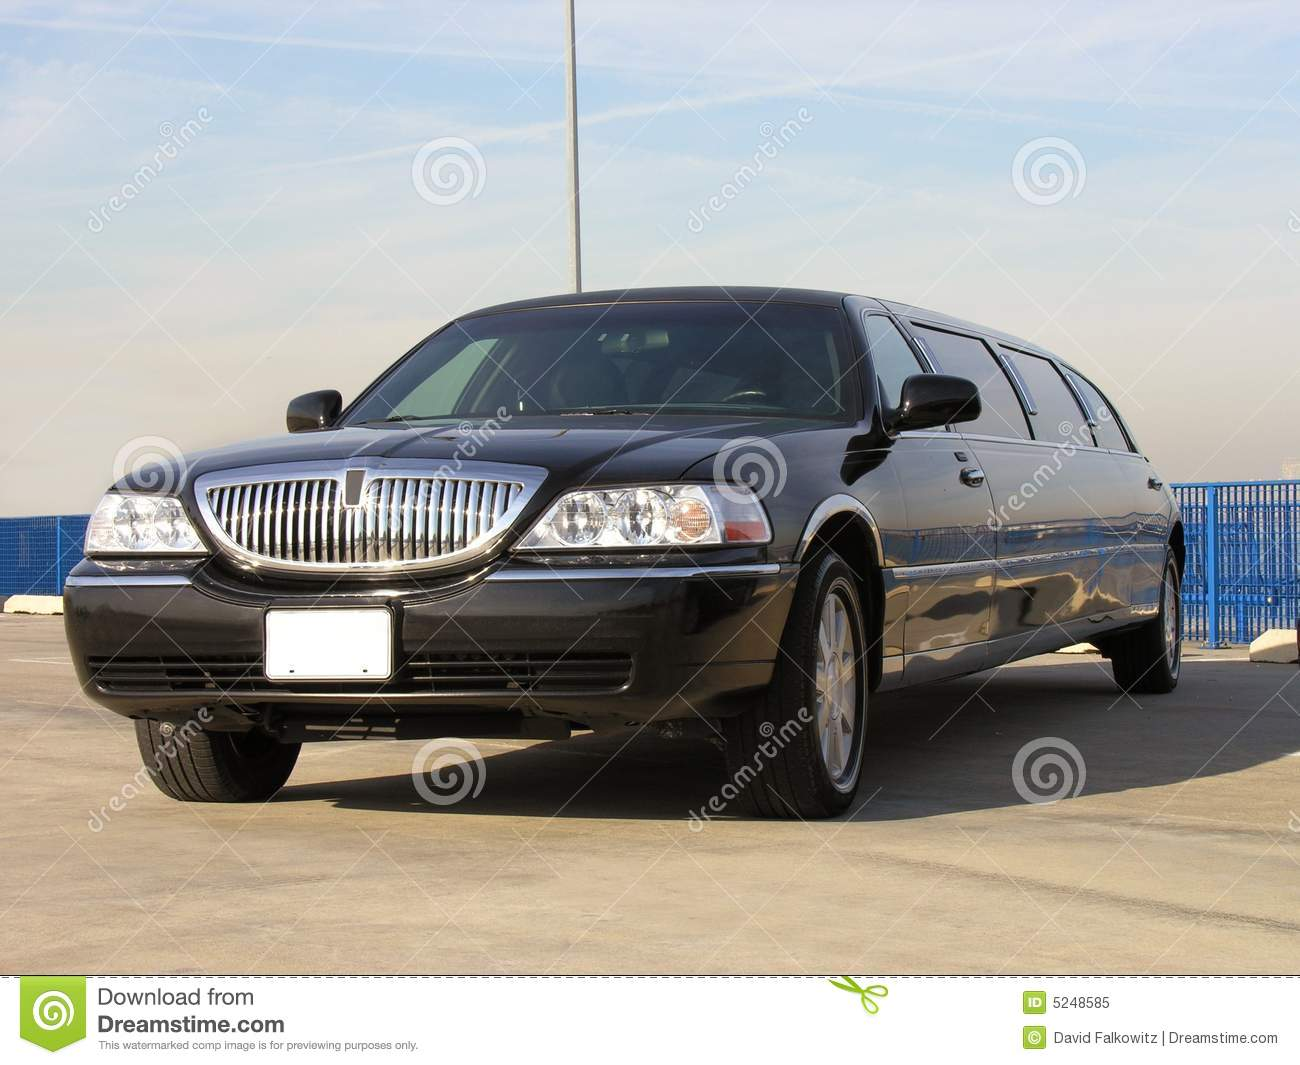 Luxe Lincoln Limo